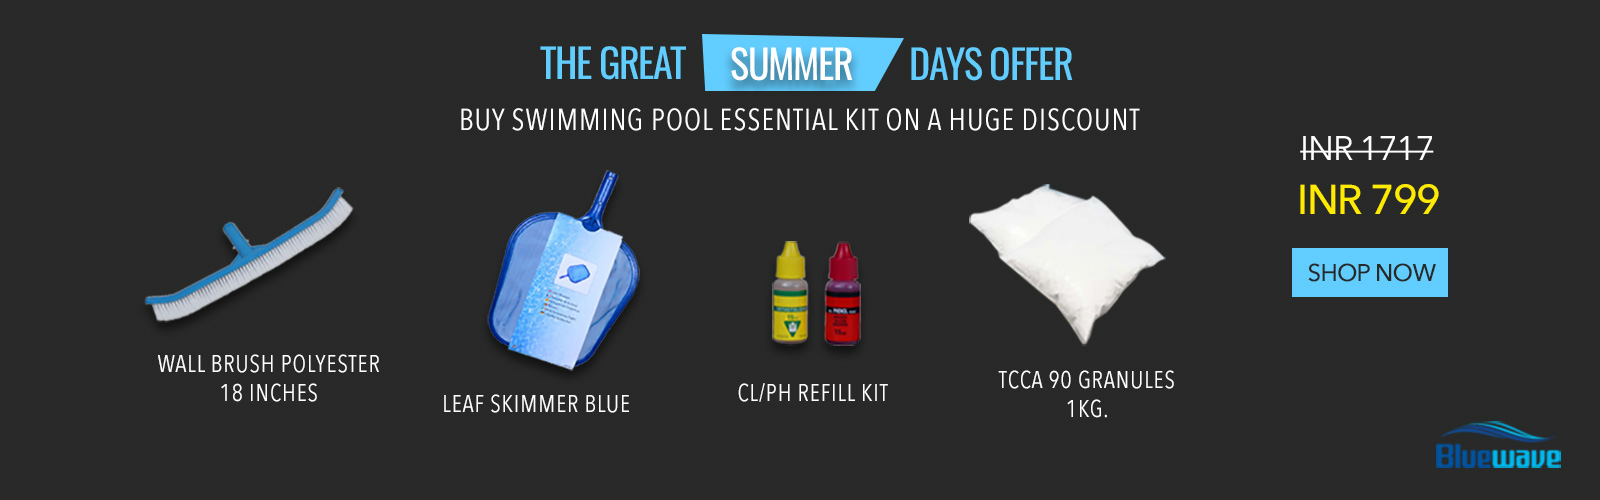 Great Summer offer for Swimming Pool Equipment